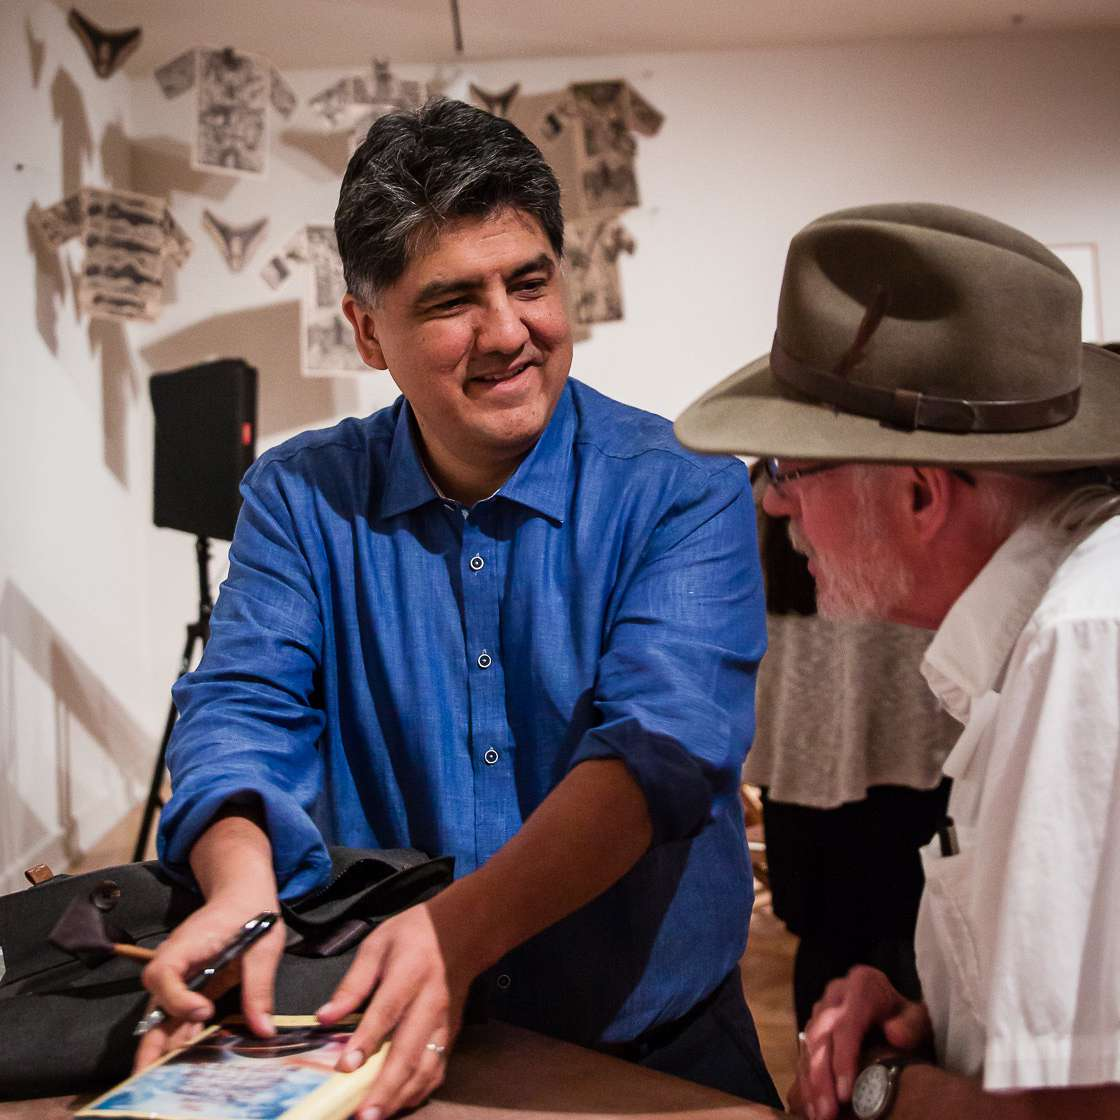 Sherman Alexie chats with a fan at an event at Arizona State University in 2016.